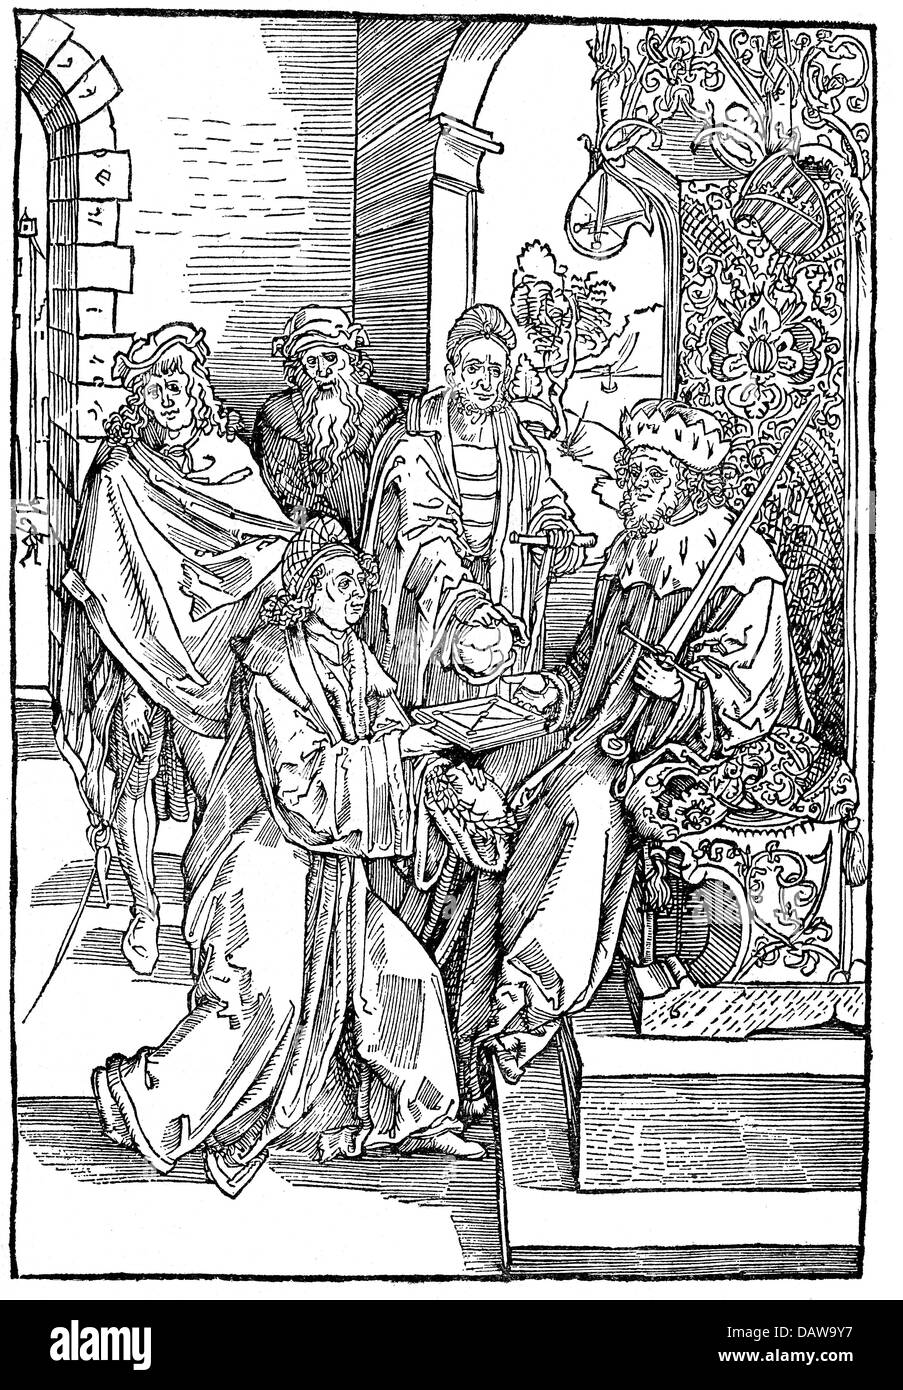 Roswitha of Gandersheim, circa 935 - later 973, German author / writer (poetess), delivering her book to emperor - Stock Image